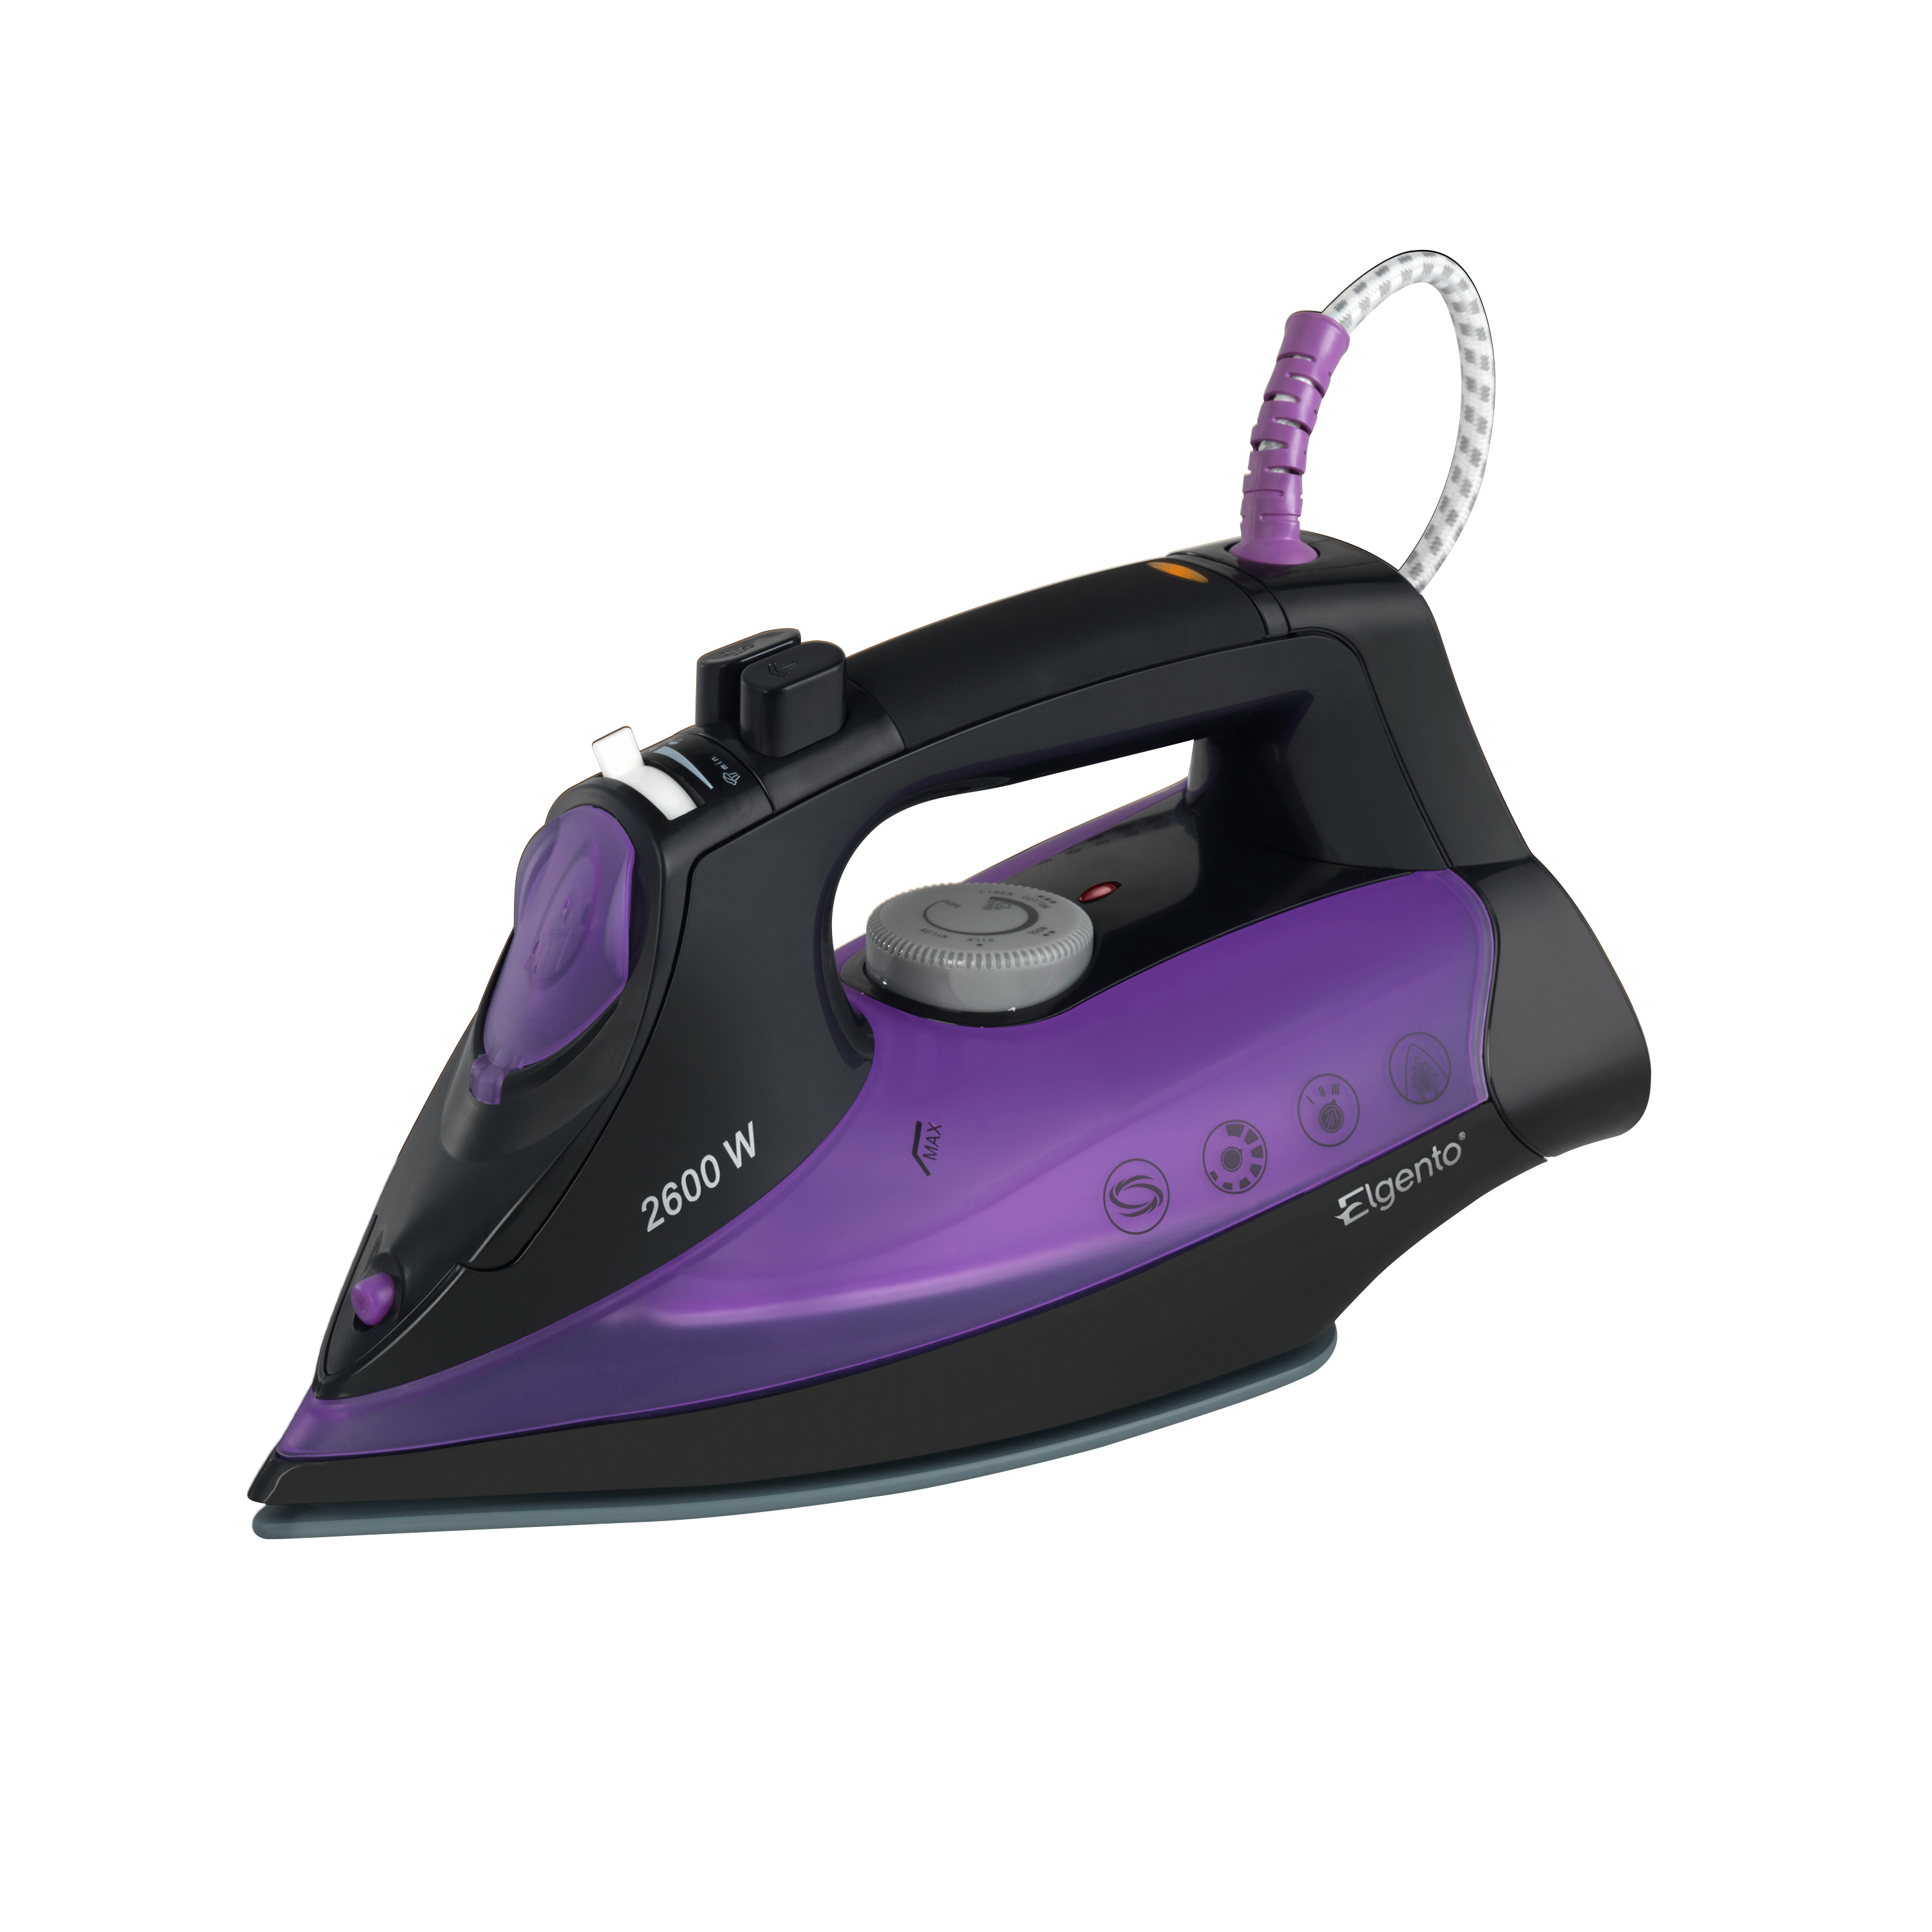 Elgento 2600W Iron No Colour